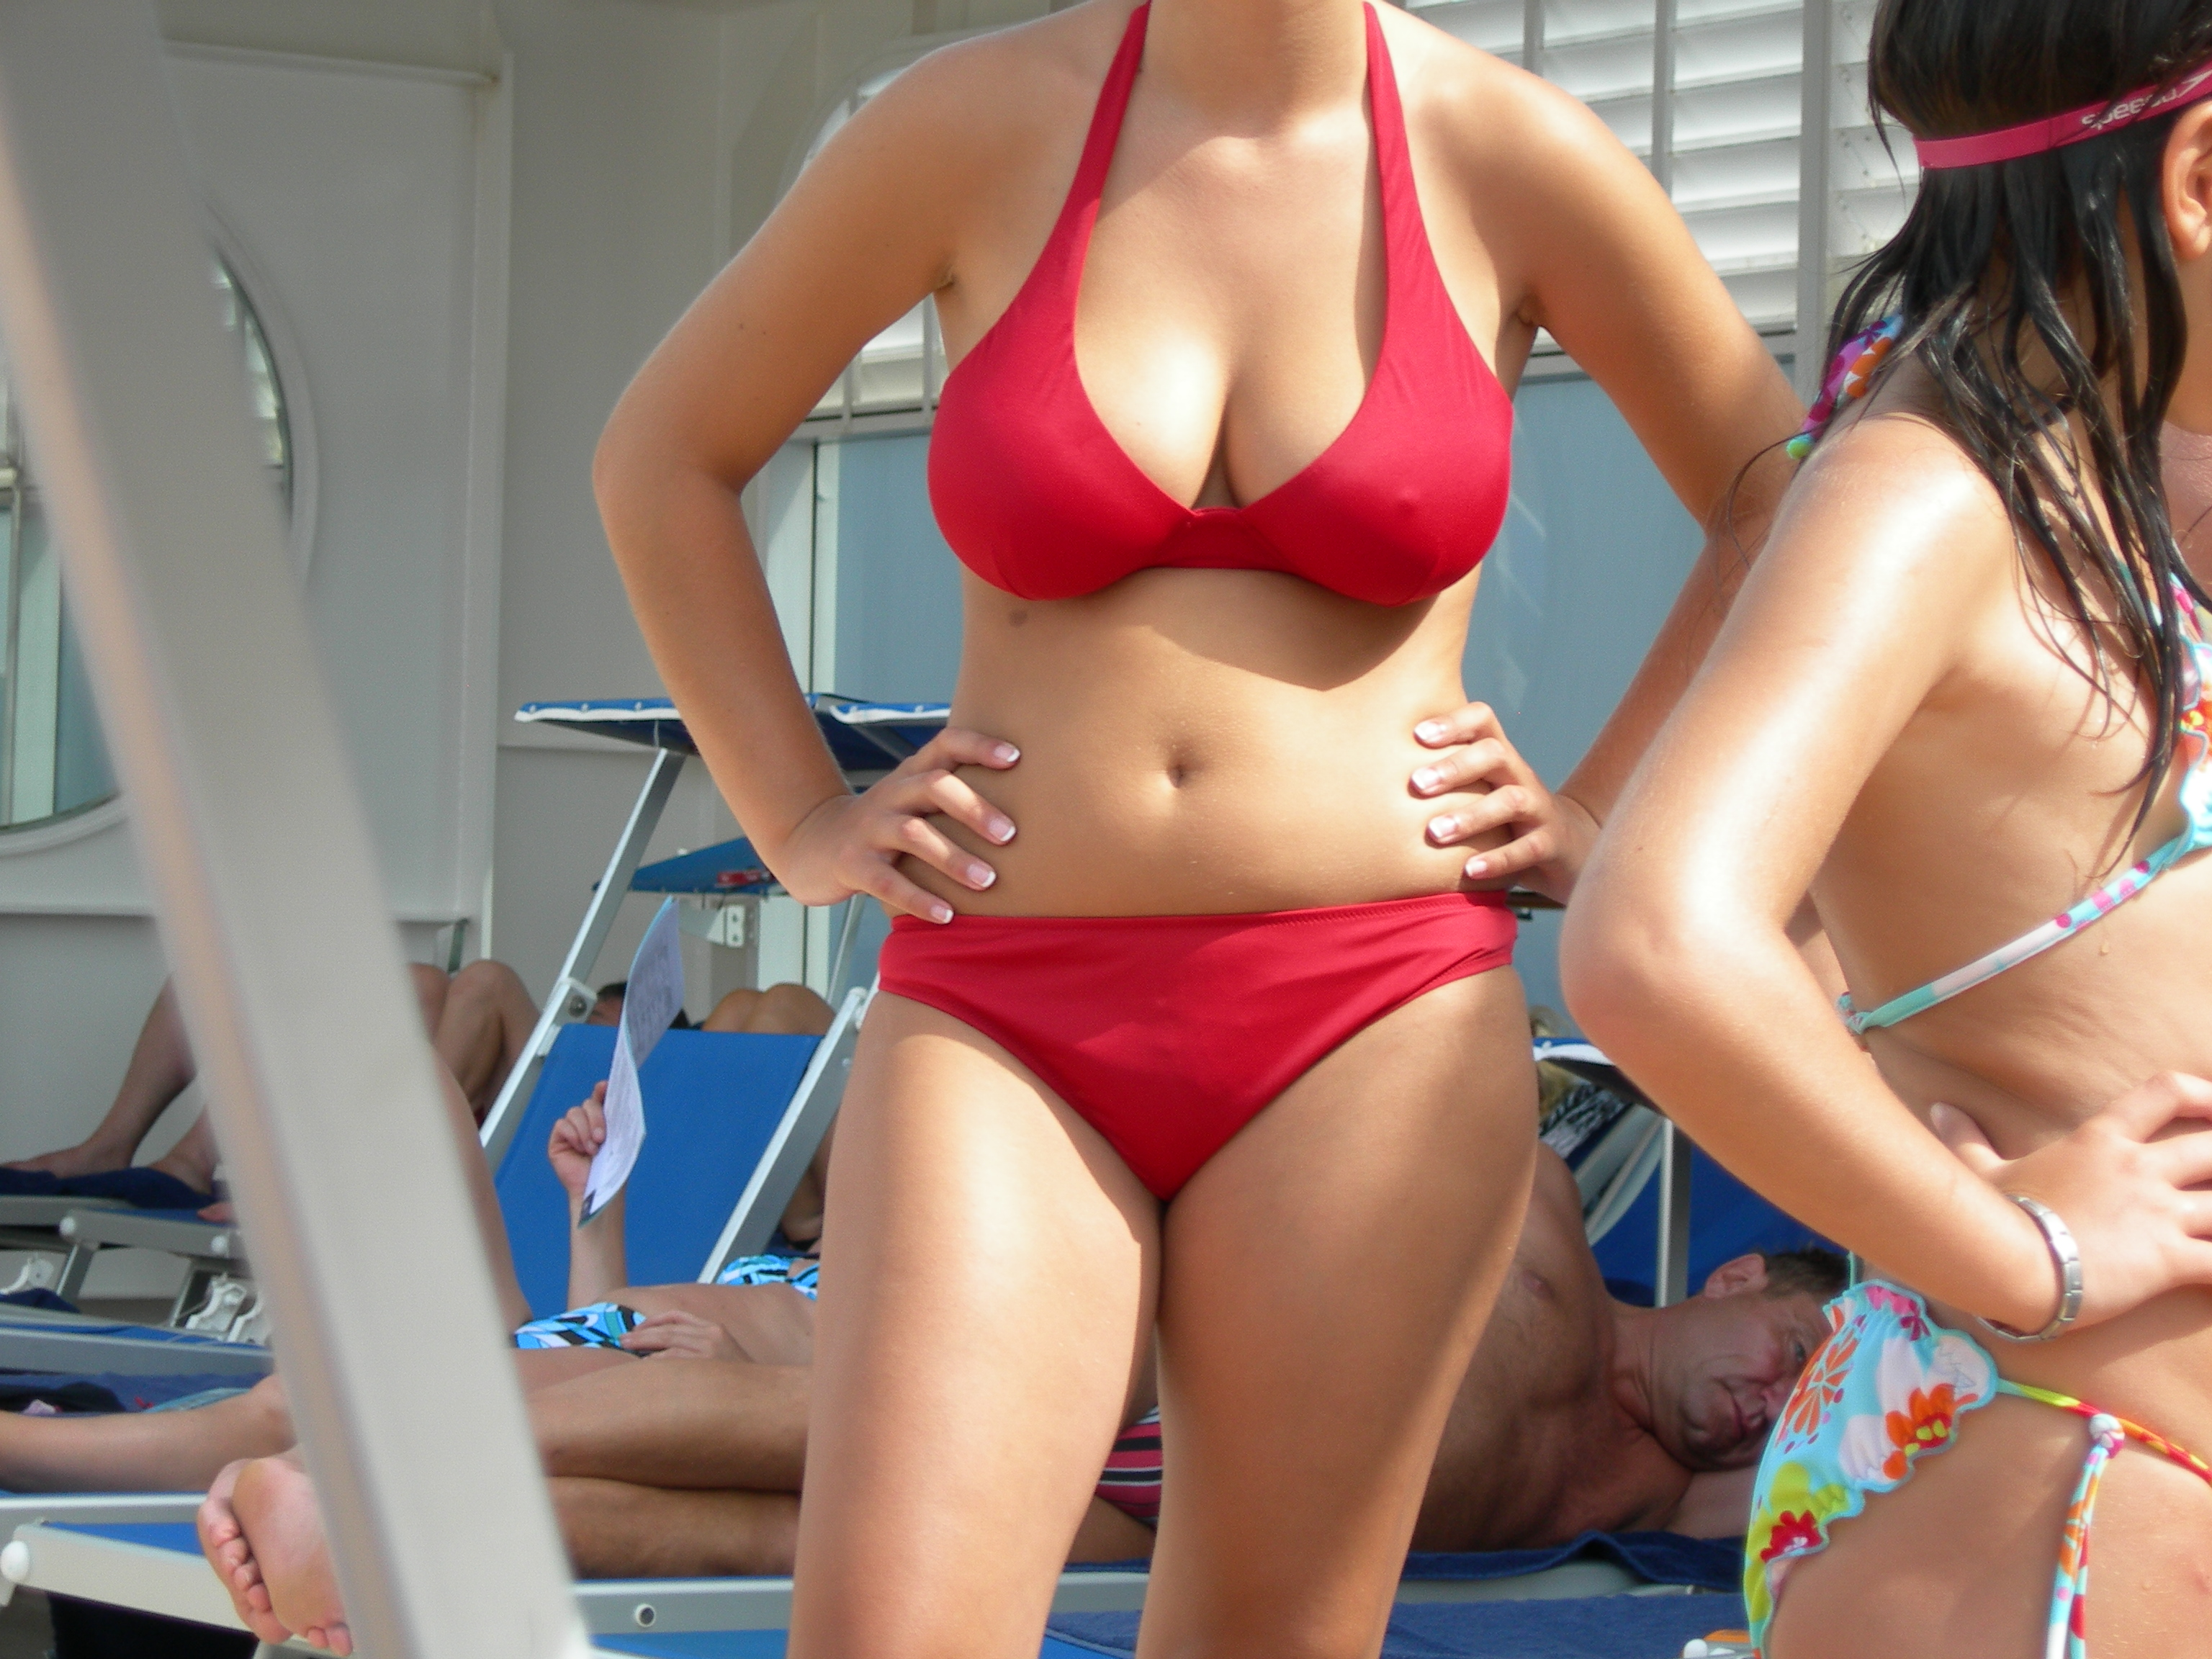 By Antonio Manfredonio (Flickr: Red Bikini) [CC-BY-SA-2.0 (www.creativecommons.org/licenses/by-sa/2.0)], via Wikimedia Commons